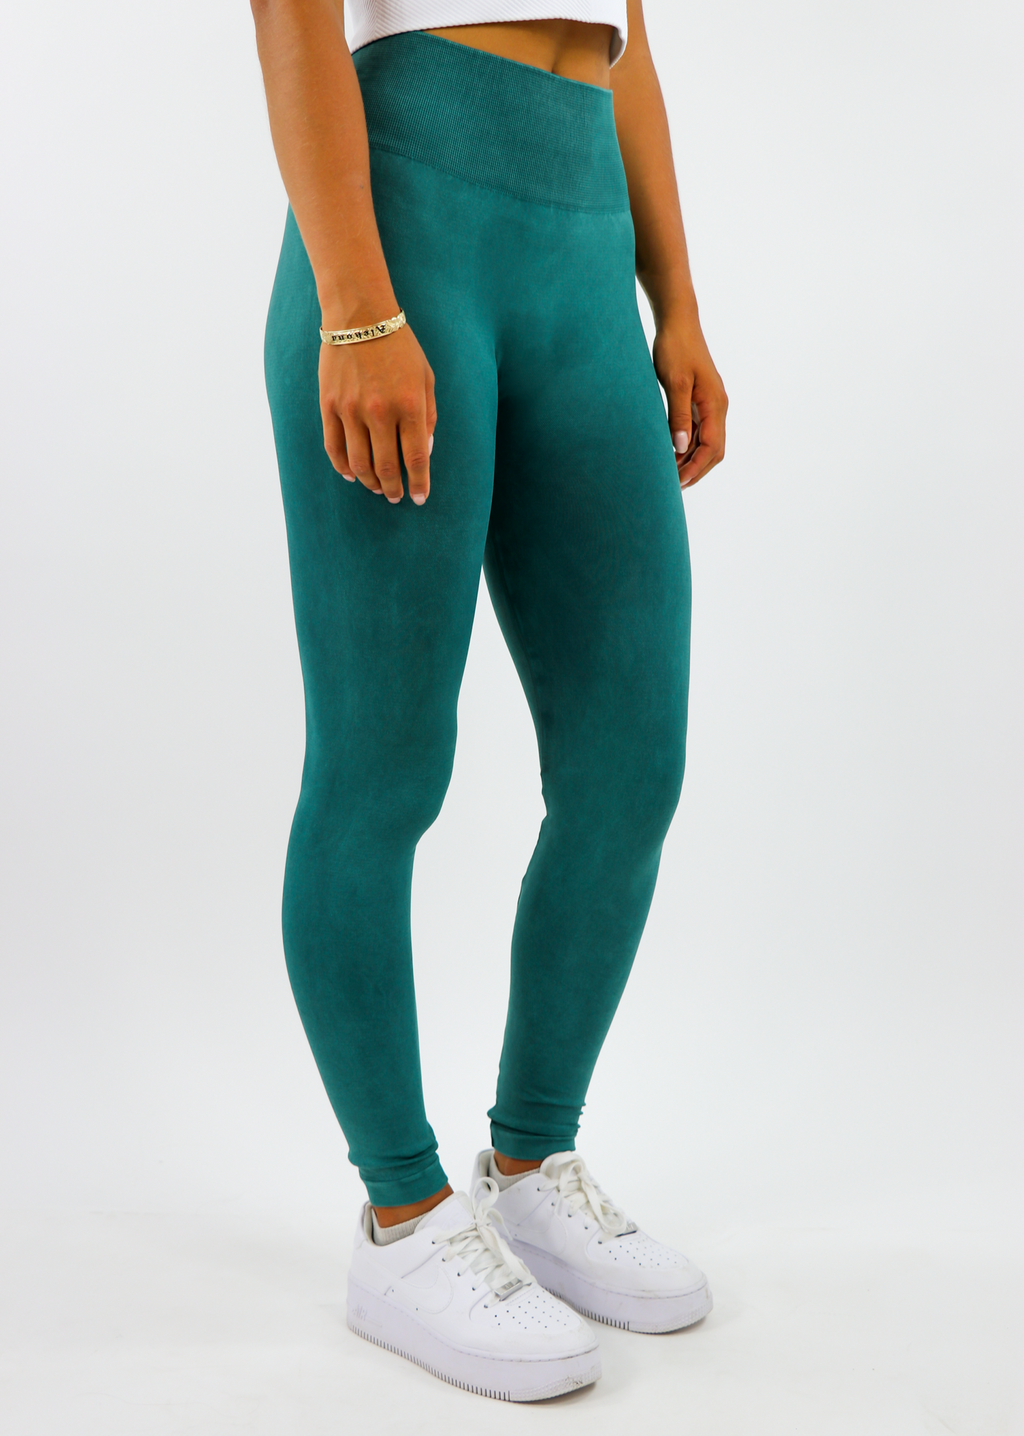 Tide Is High Leggings ★ Jade - Rock N Rags